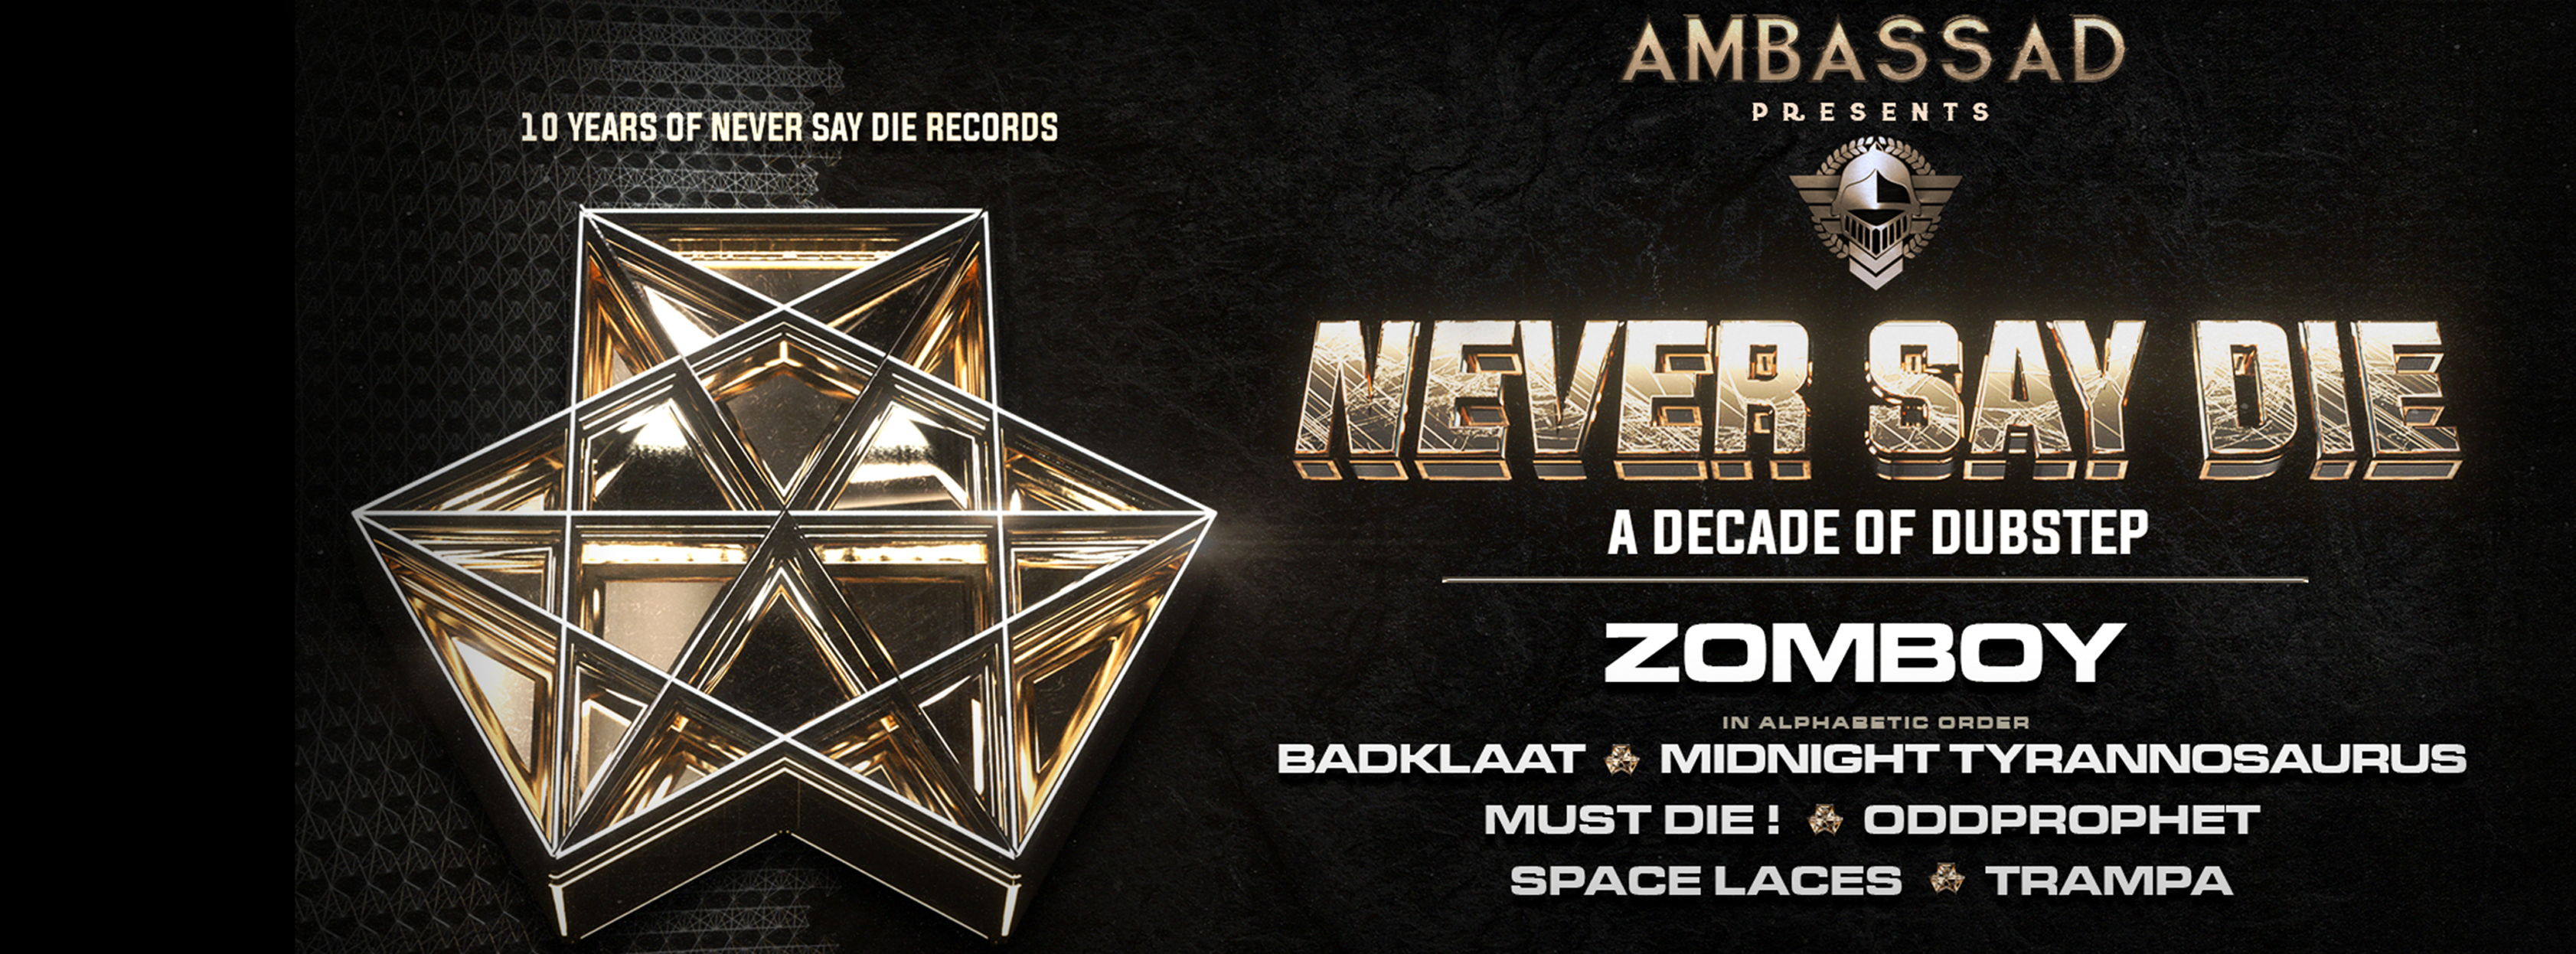 Ambassad presents : 10 years of Never Say Die Records